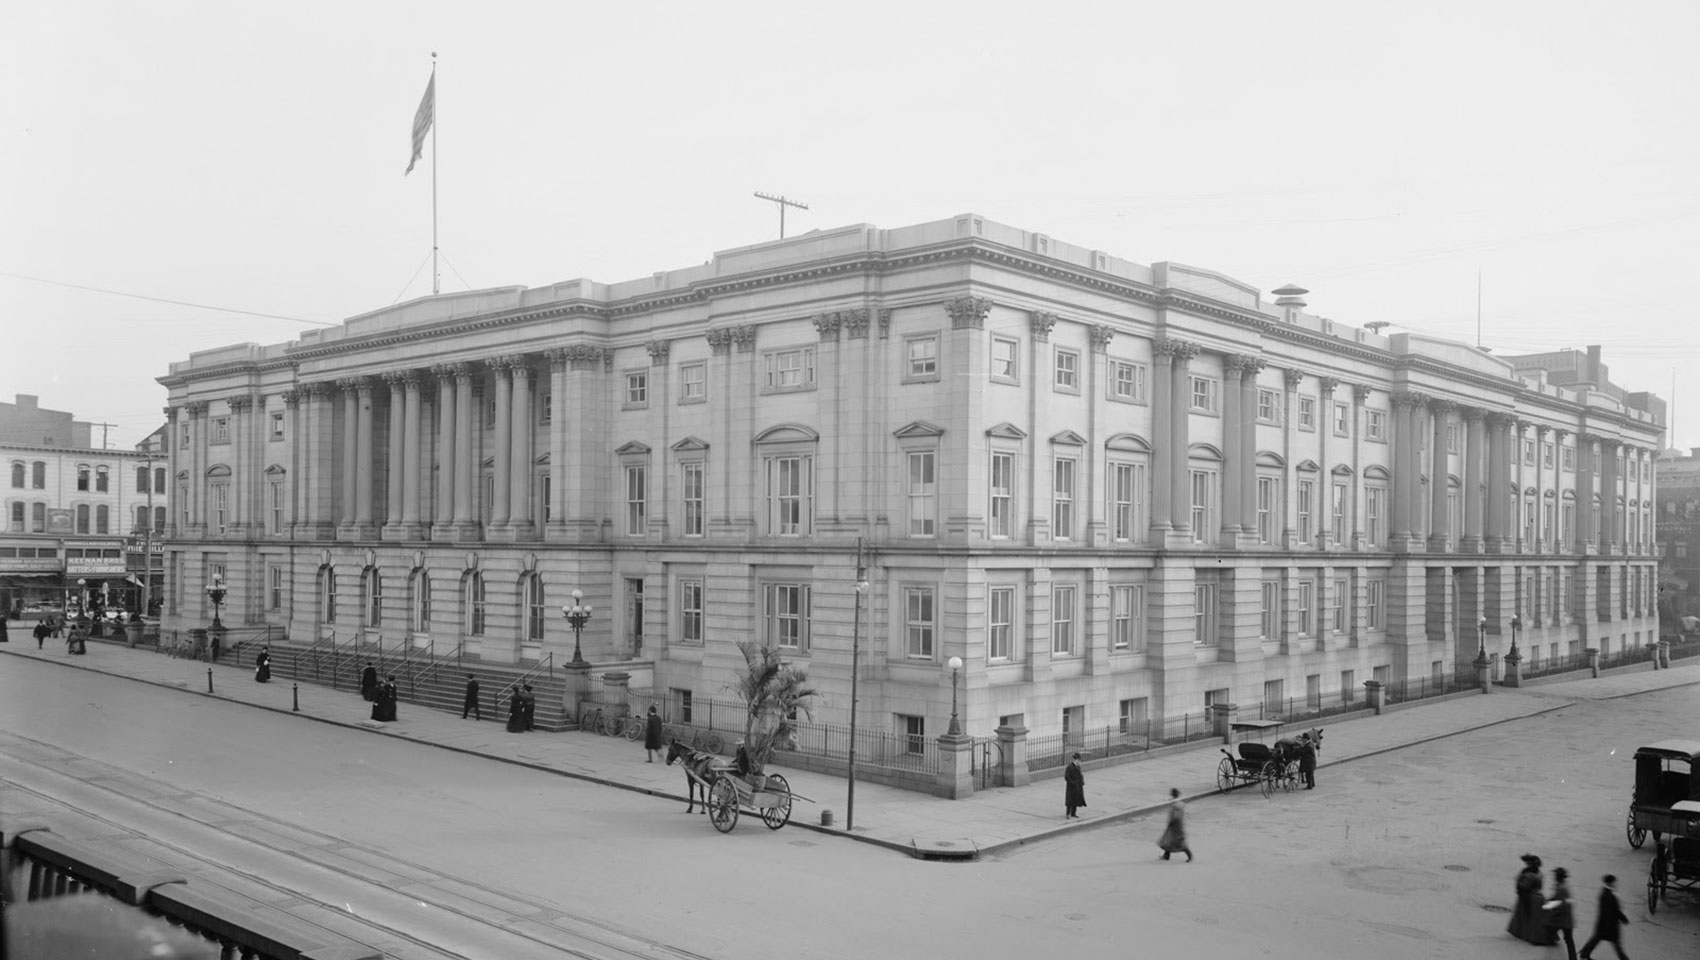 1905 photograph of Washington DC's General Post Office